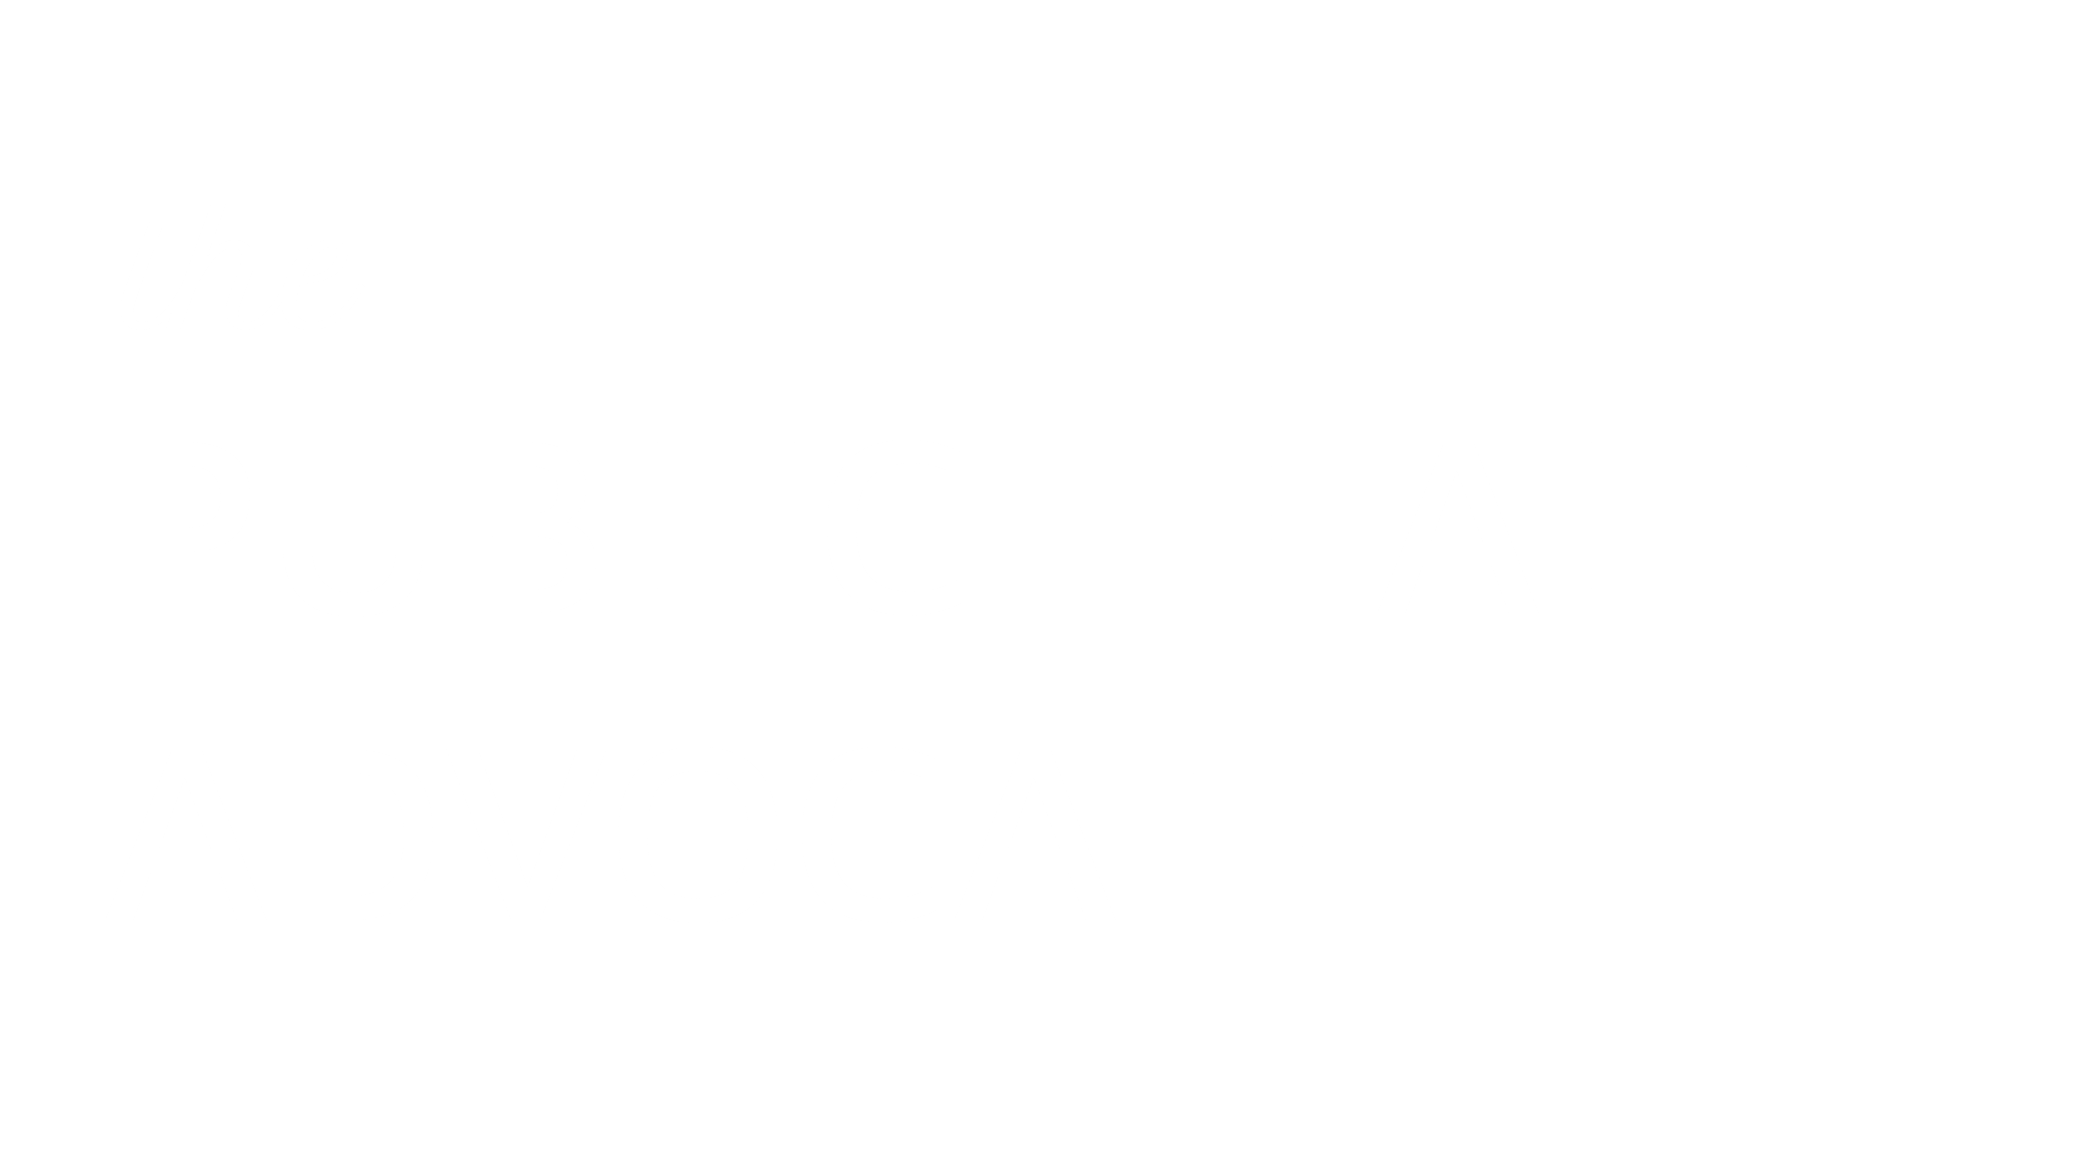 The Public Health Advocate